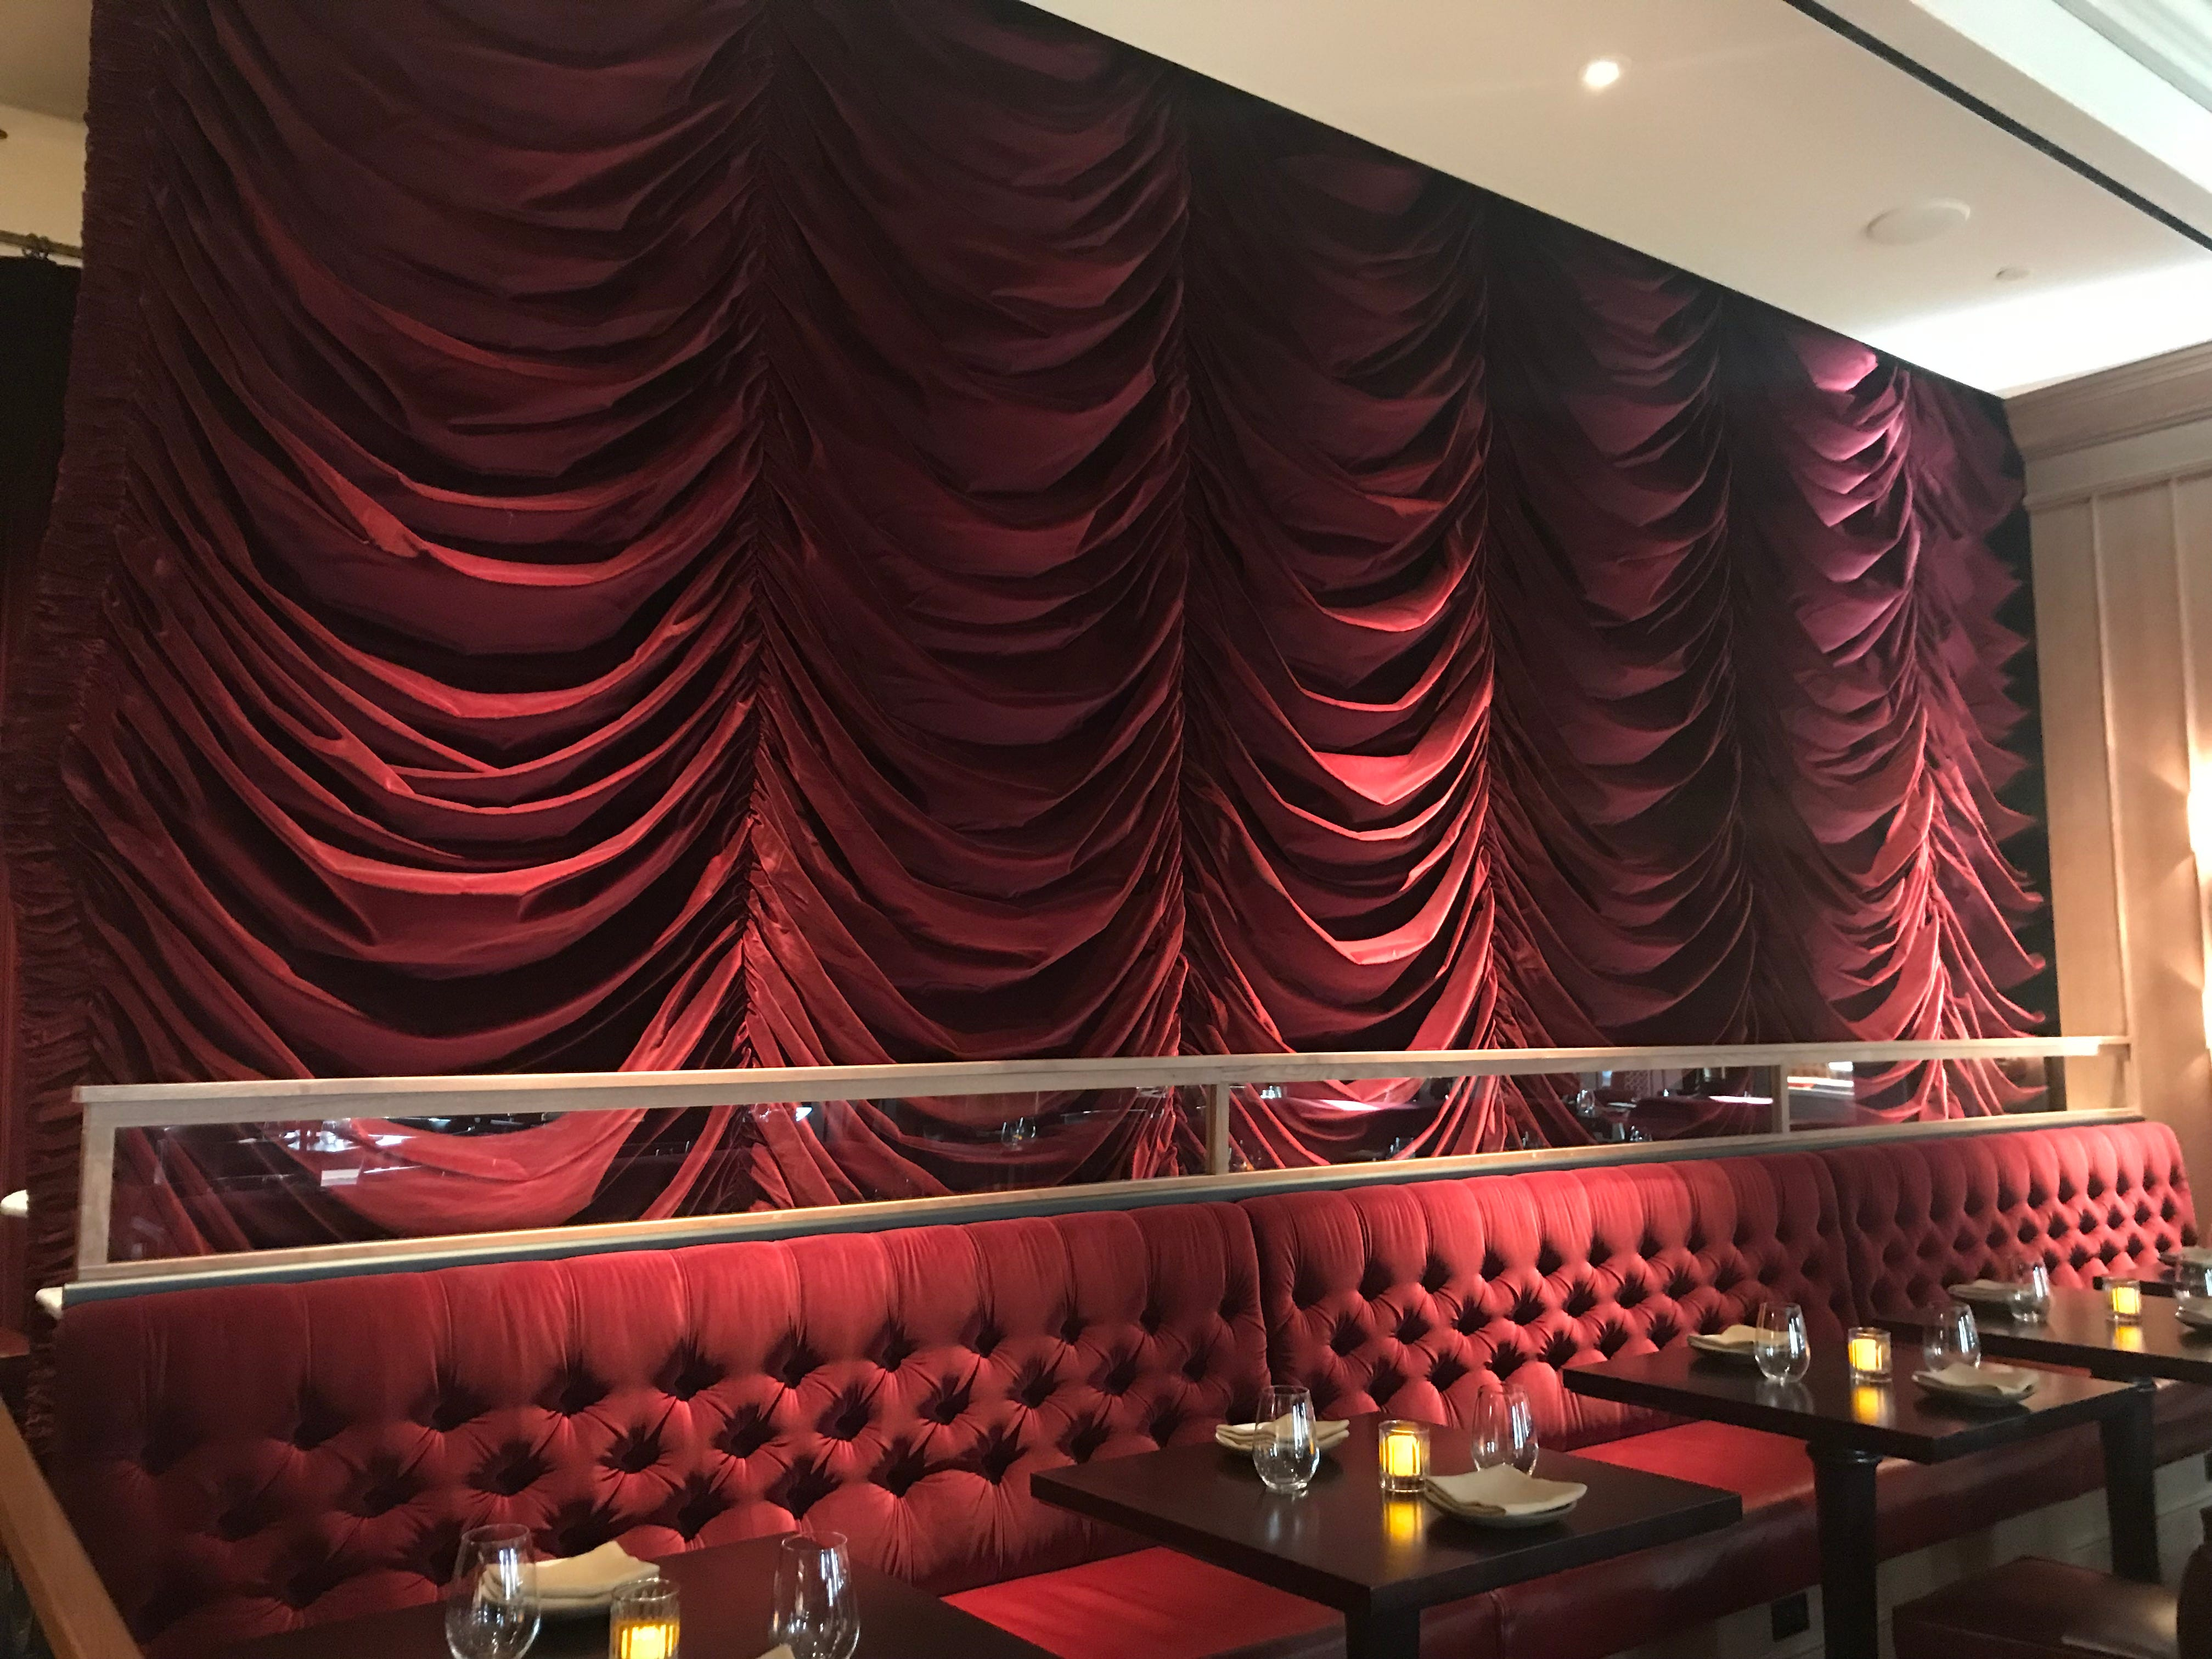 Had a rough night? A velvet curtain hides the bar at NoMad Bar during breakfast at the restaurant.